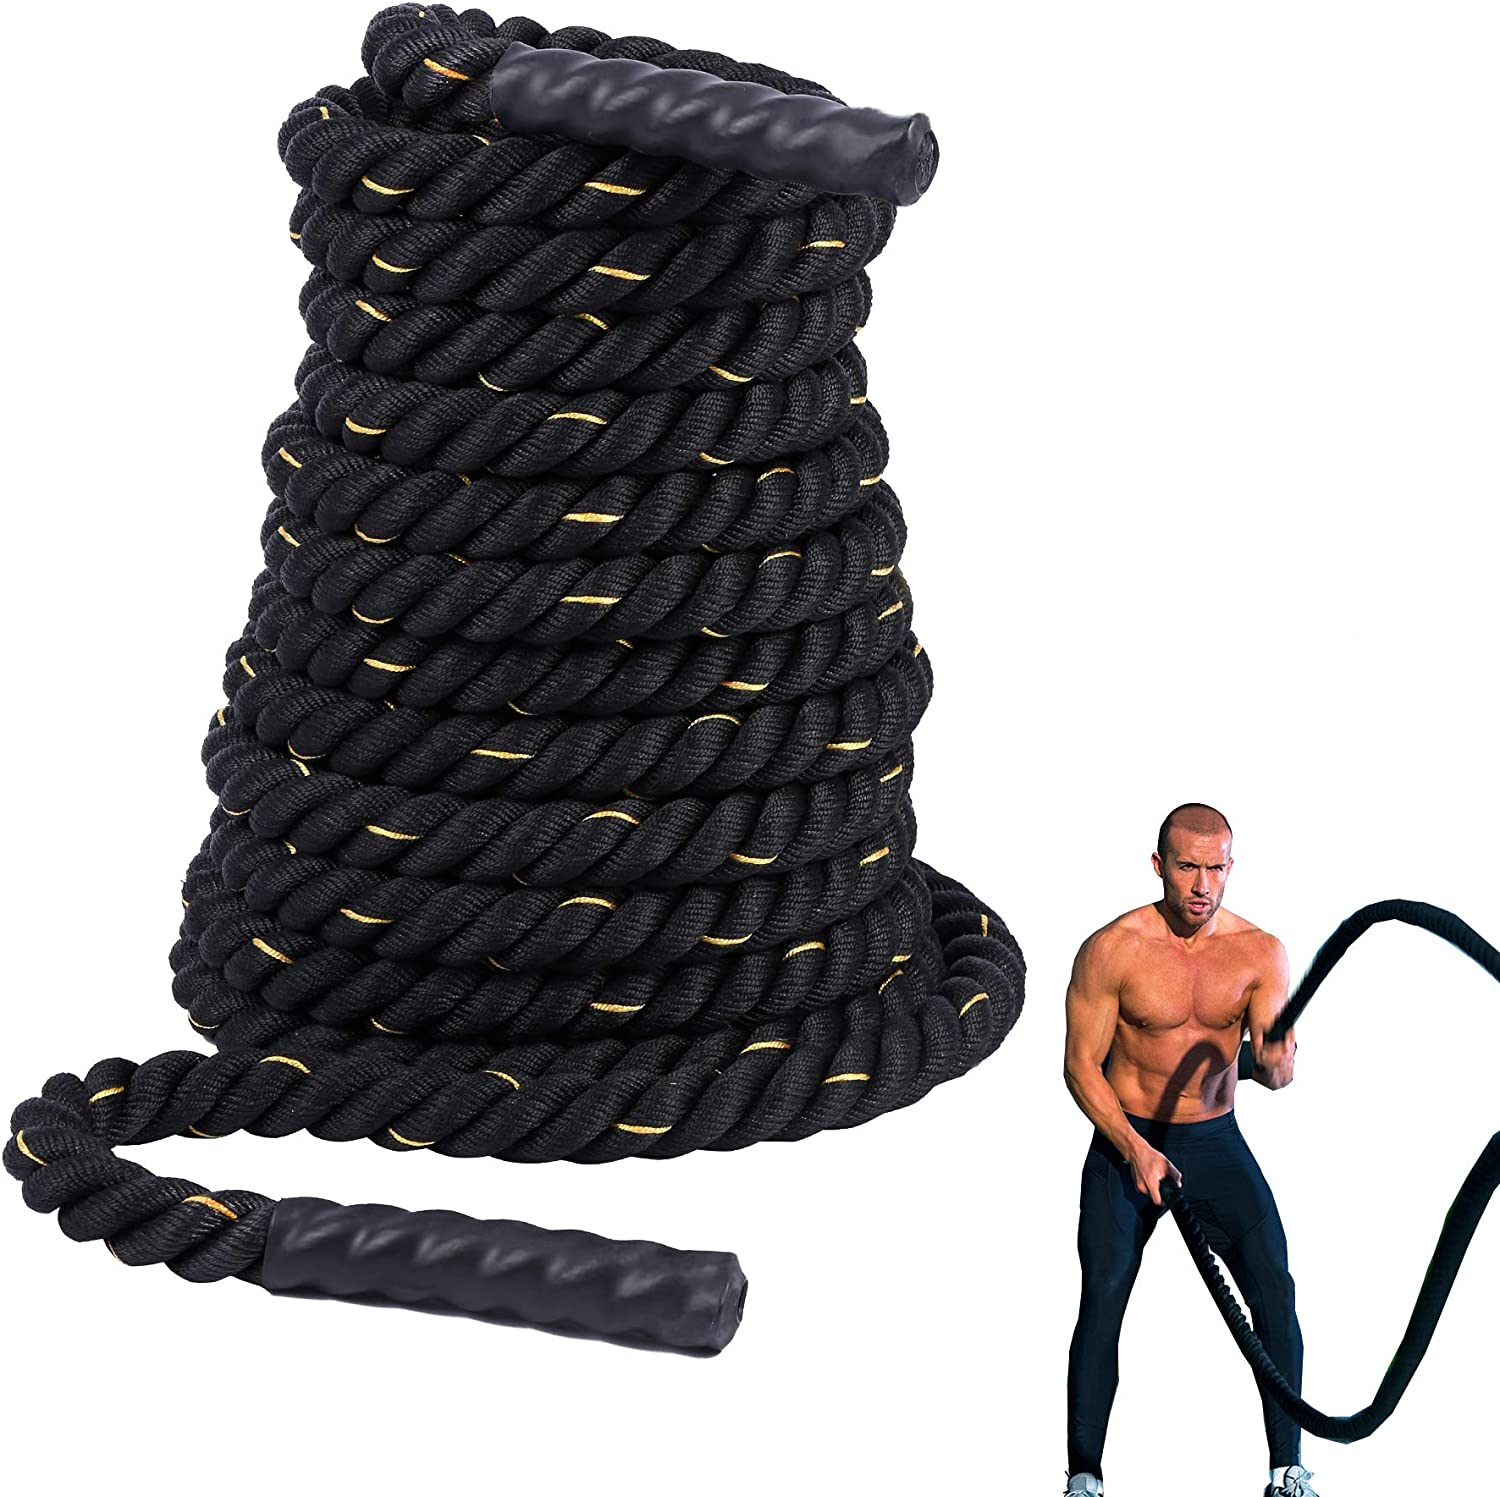 Details about  /1.5″ Battle Rope Poly Dacron Fitness Training Exercise Workout Cardio BLUE 40ft